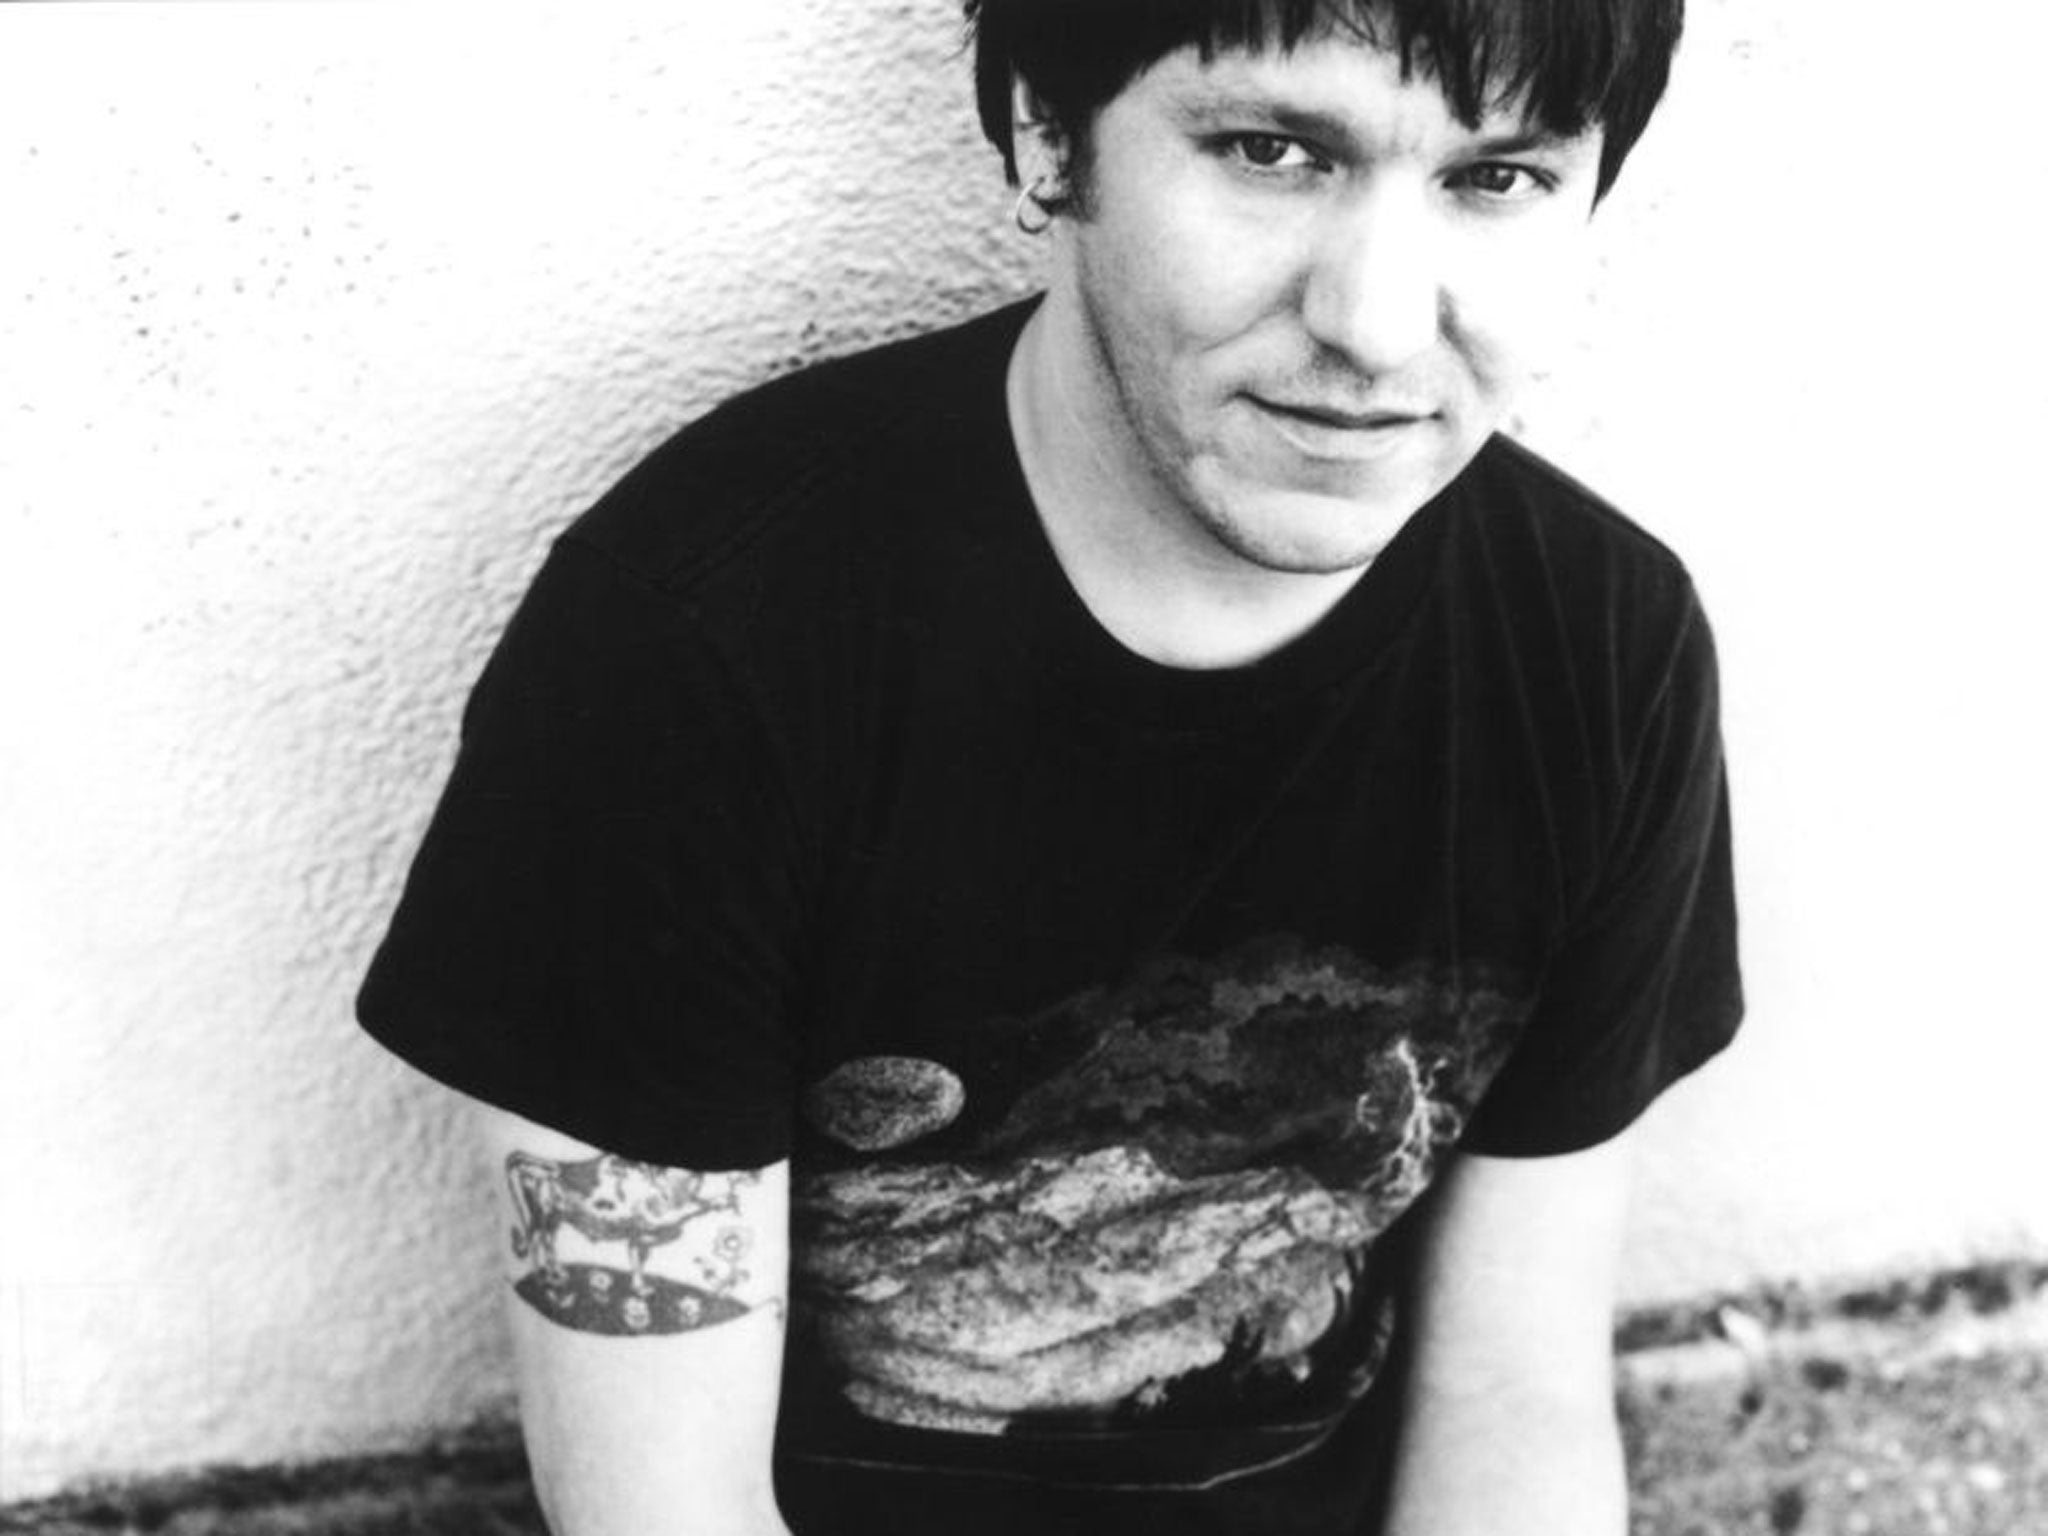 Elliott smith joder broma